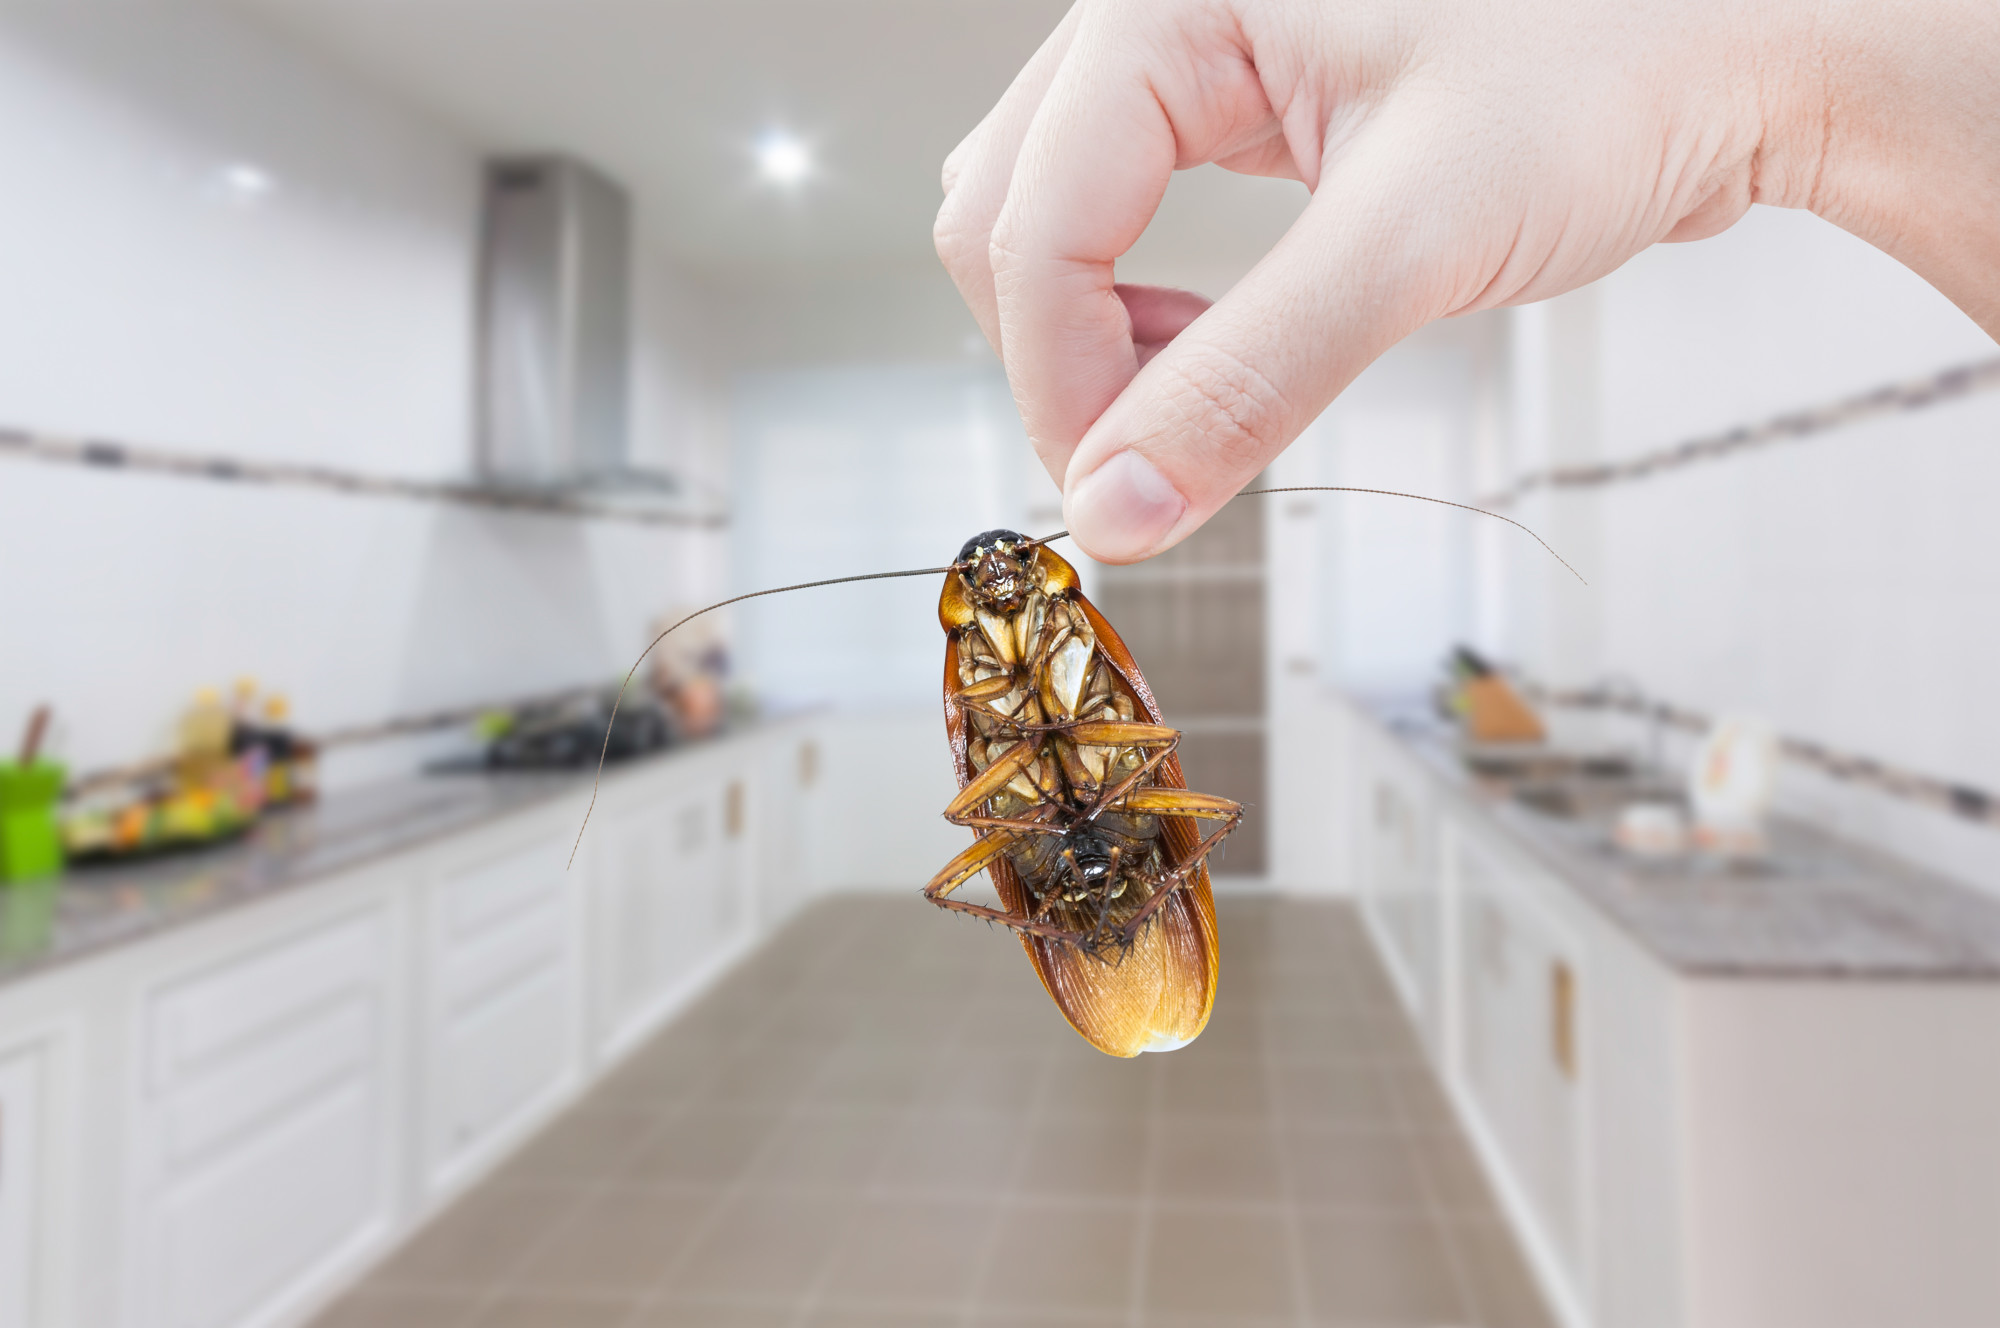 Eaten Alive: Notorious House Pests That Will Destroy Your Home